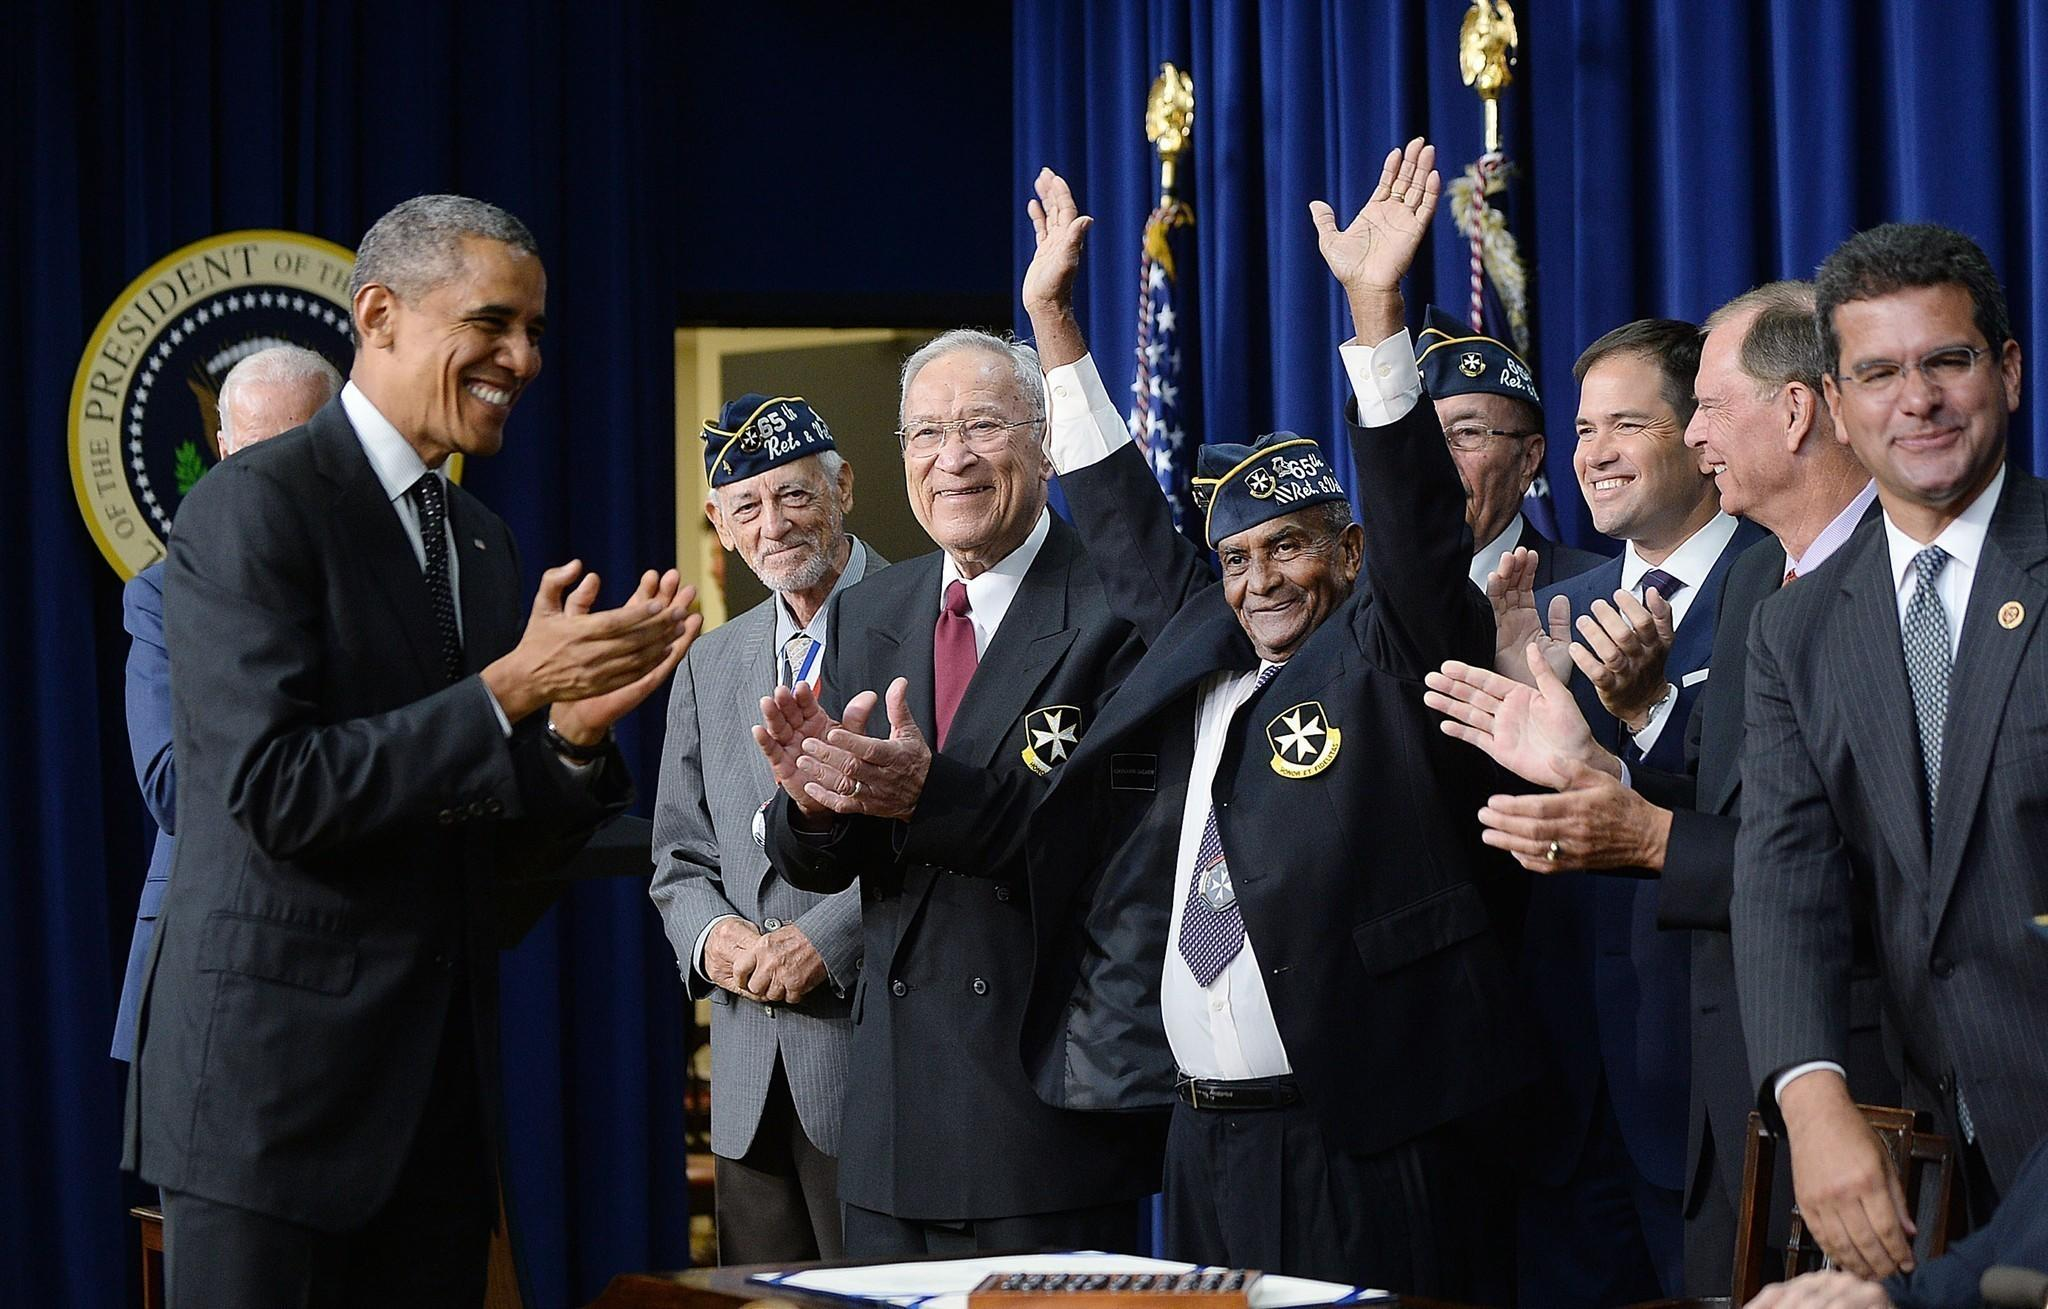 U.S. President Barack Obama signs H.R. 1726 to award a Congressional Gold Medal to the 65th Infantry Regiment, known as the Borinqueneers in the South Court Auditorium of the White House on June 10, 2014 in Washington, D.C.